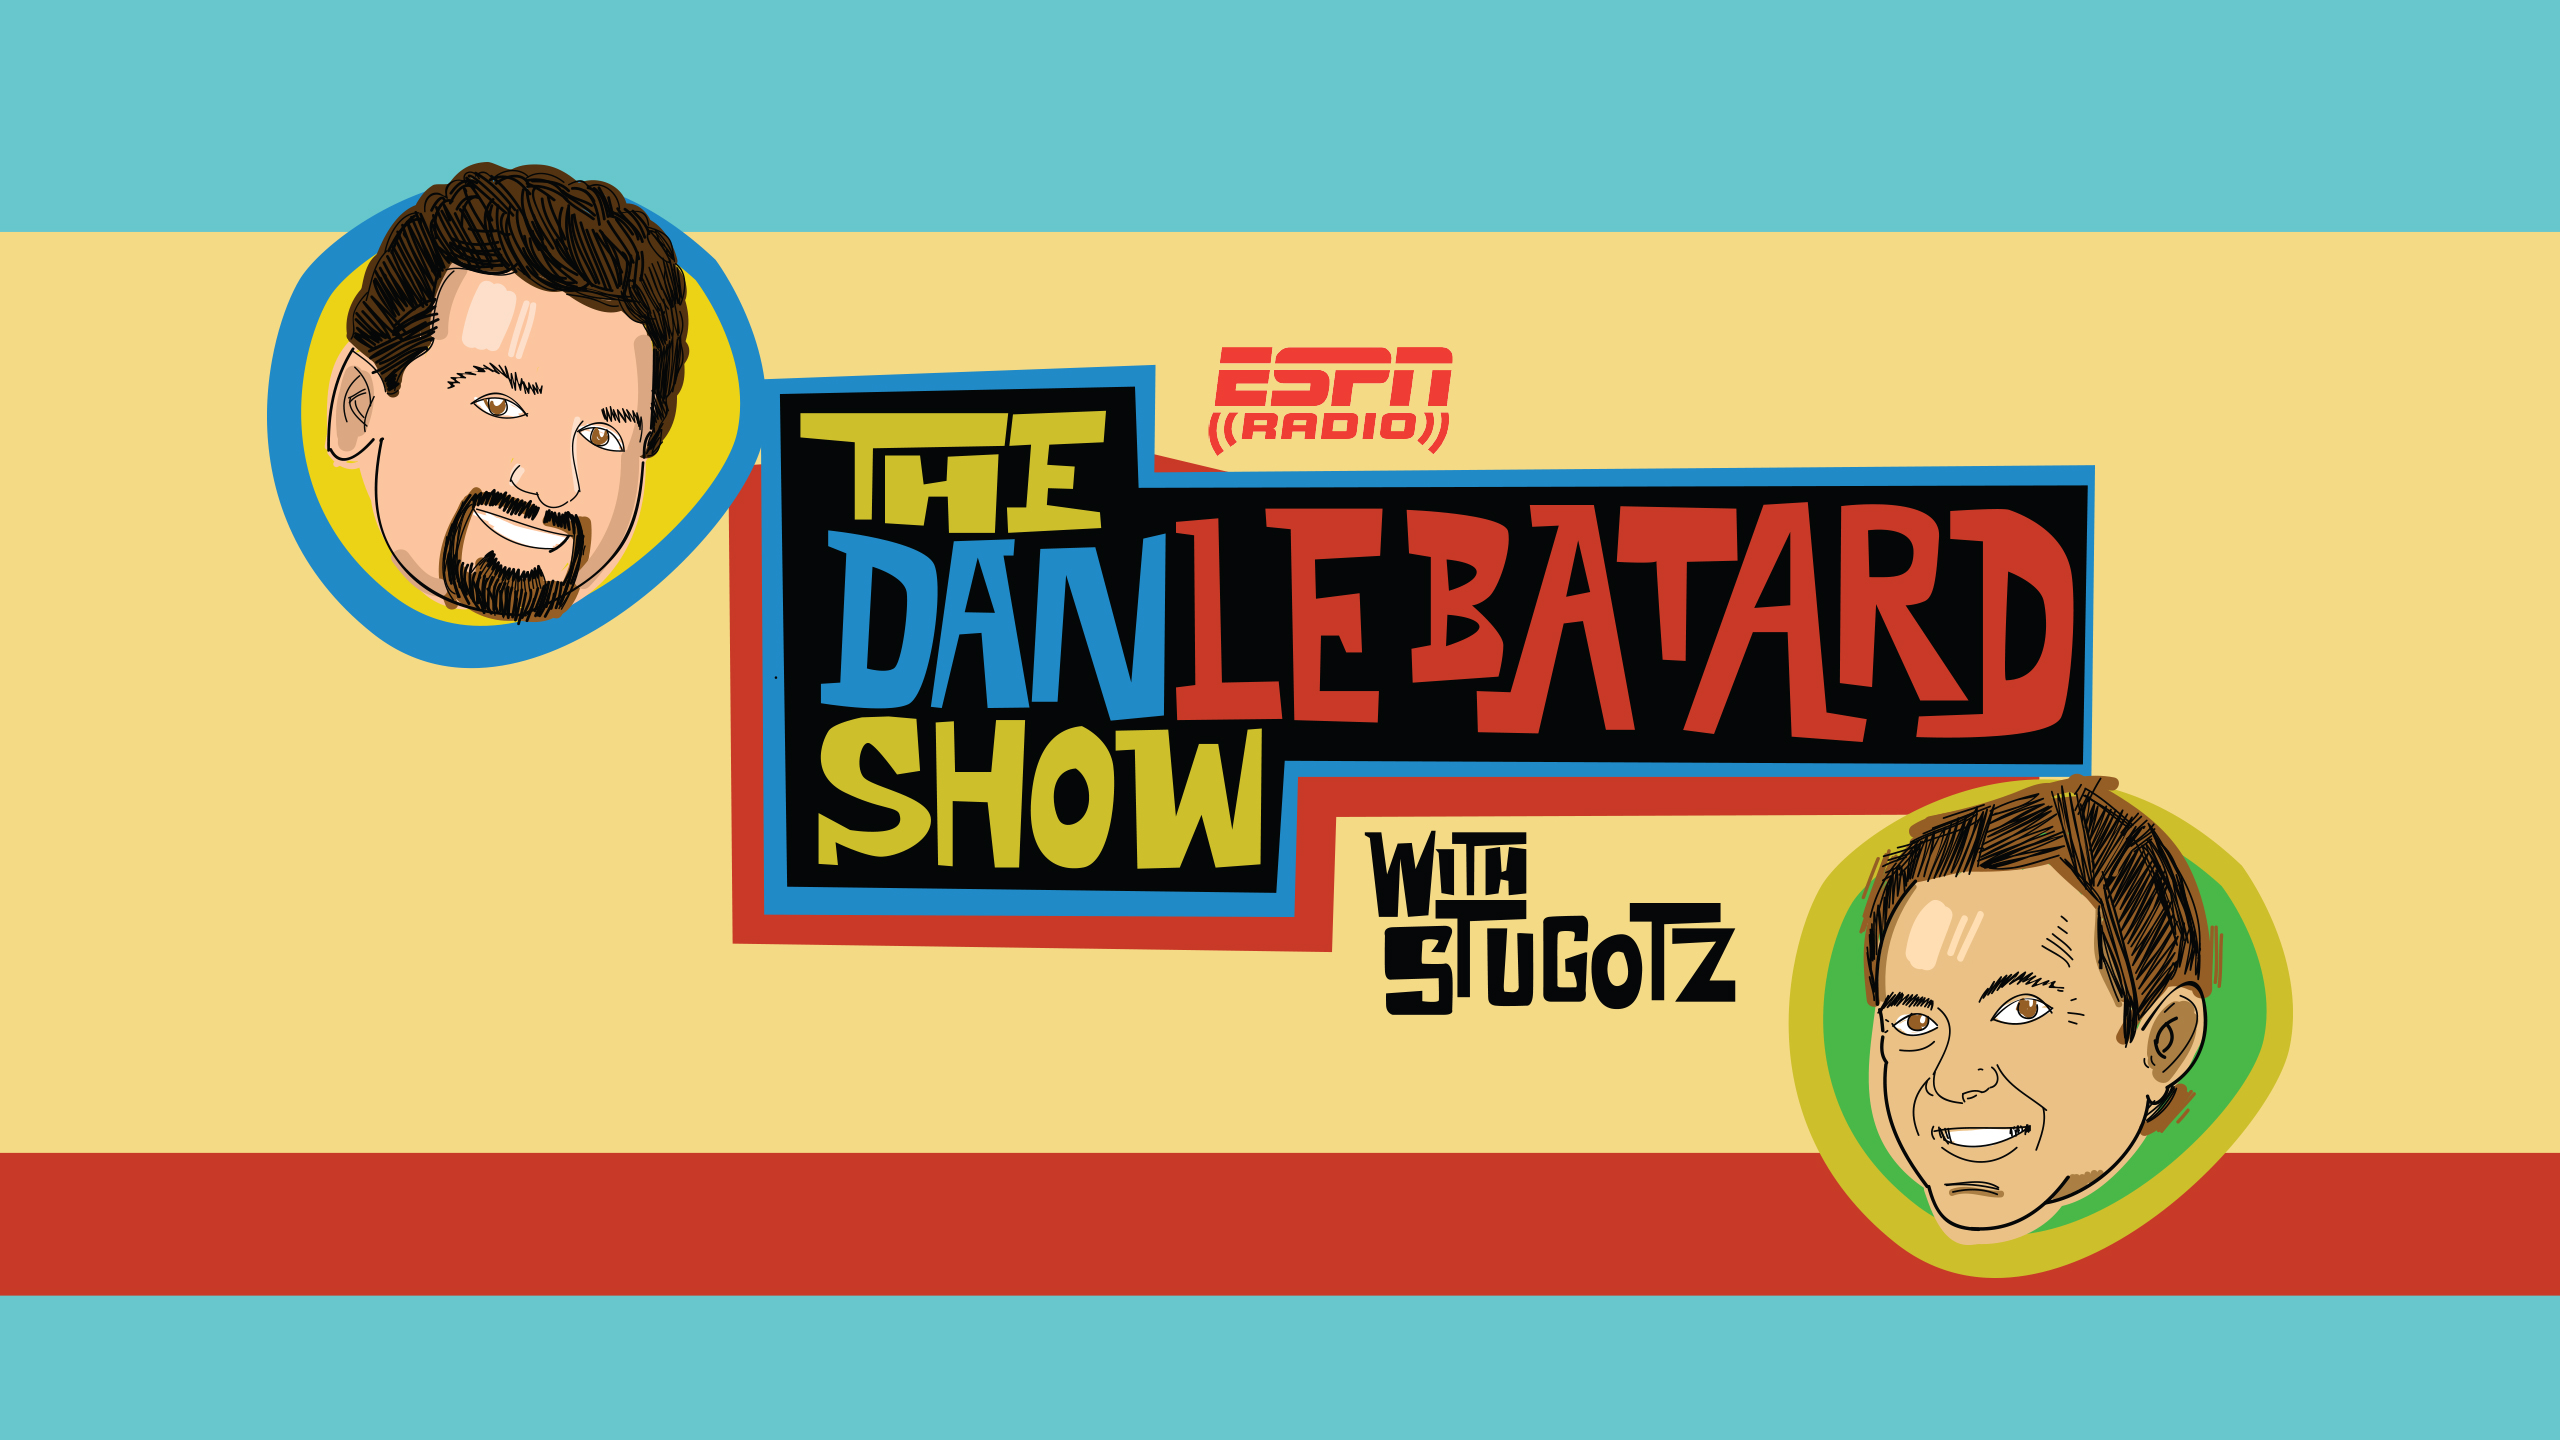 Tue, 11/13 - The Dan Le Batard Show with Stugotz Presented by Progressive